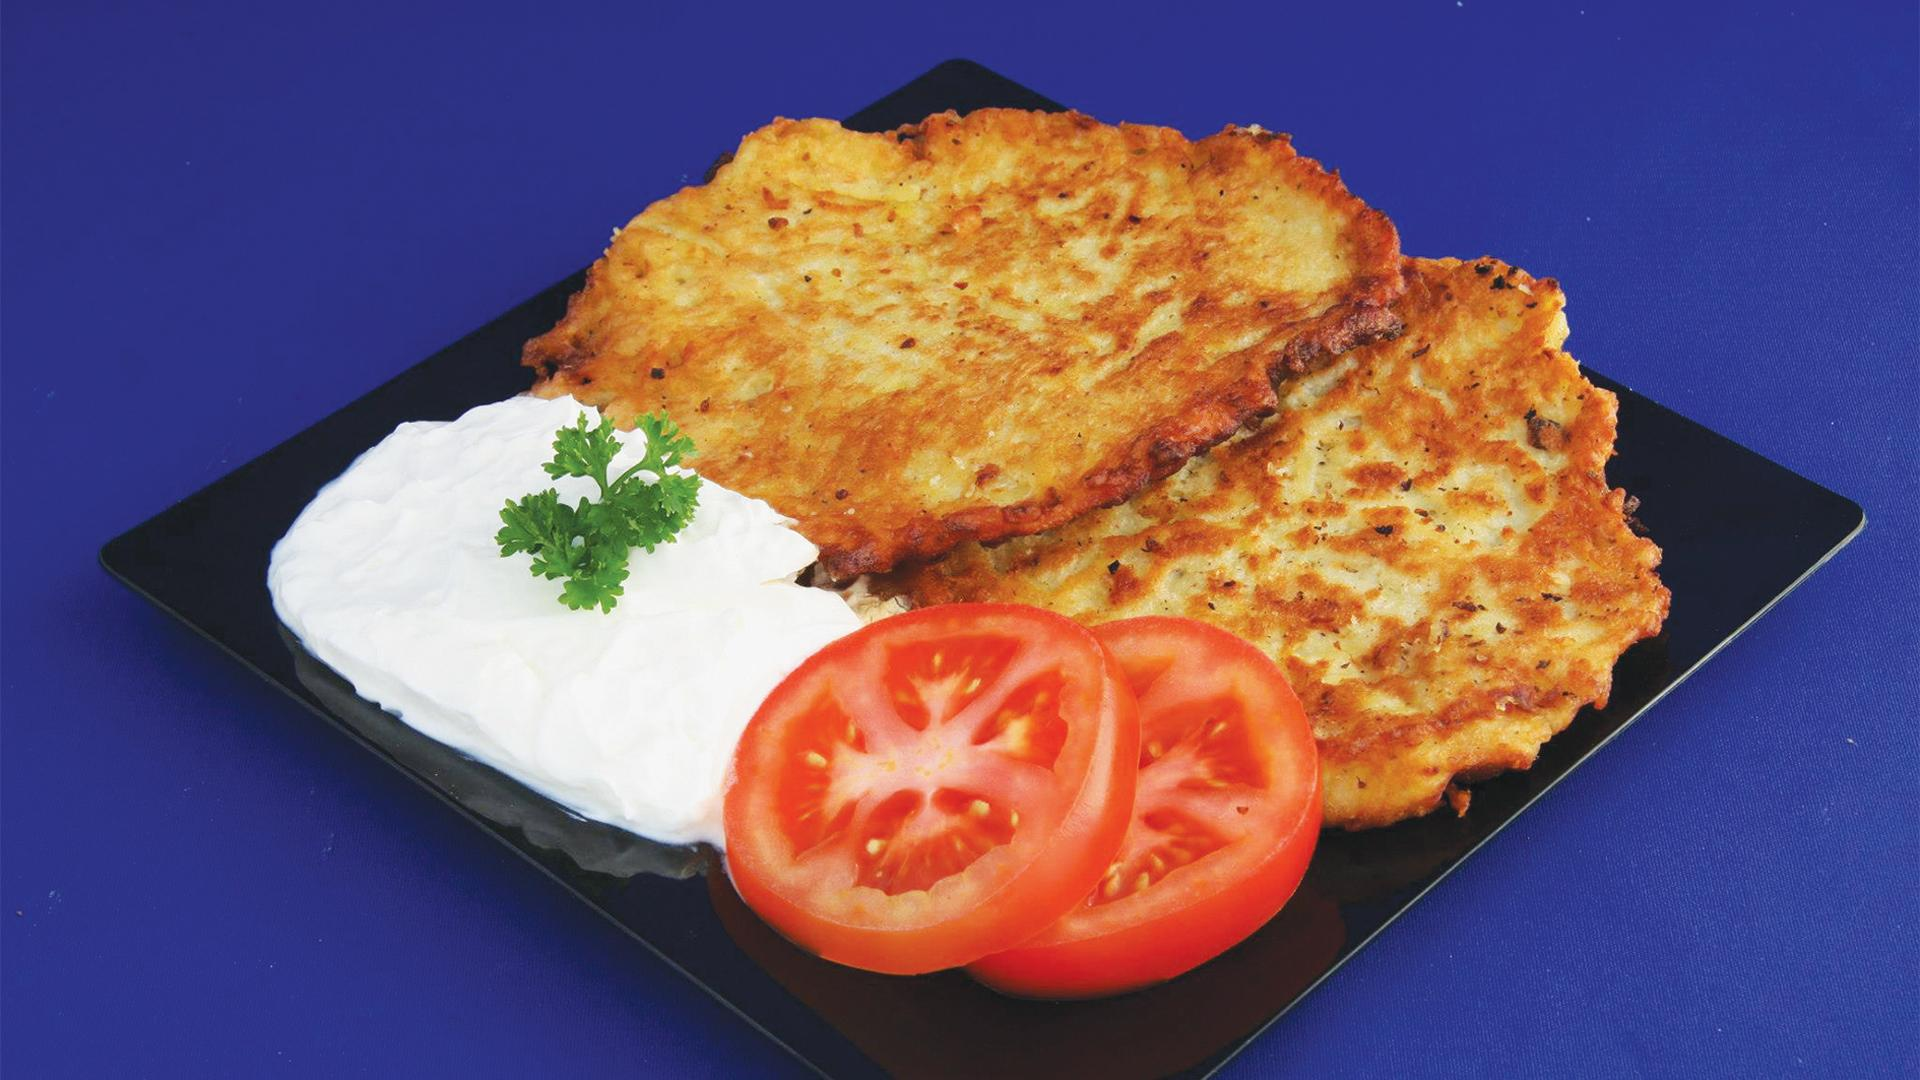 Toronto's best latkes | A plate of latkes with sour cream and tomatoes from Daiter's